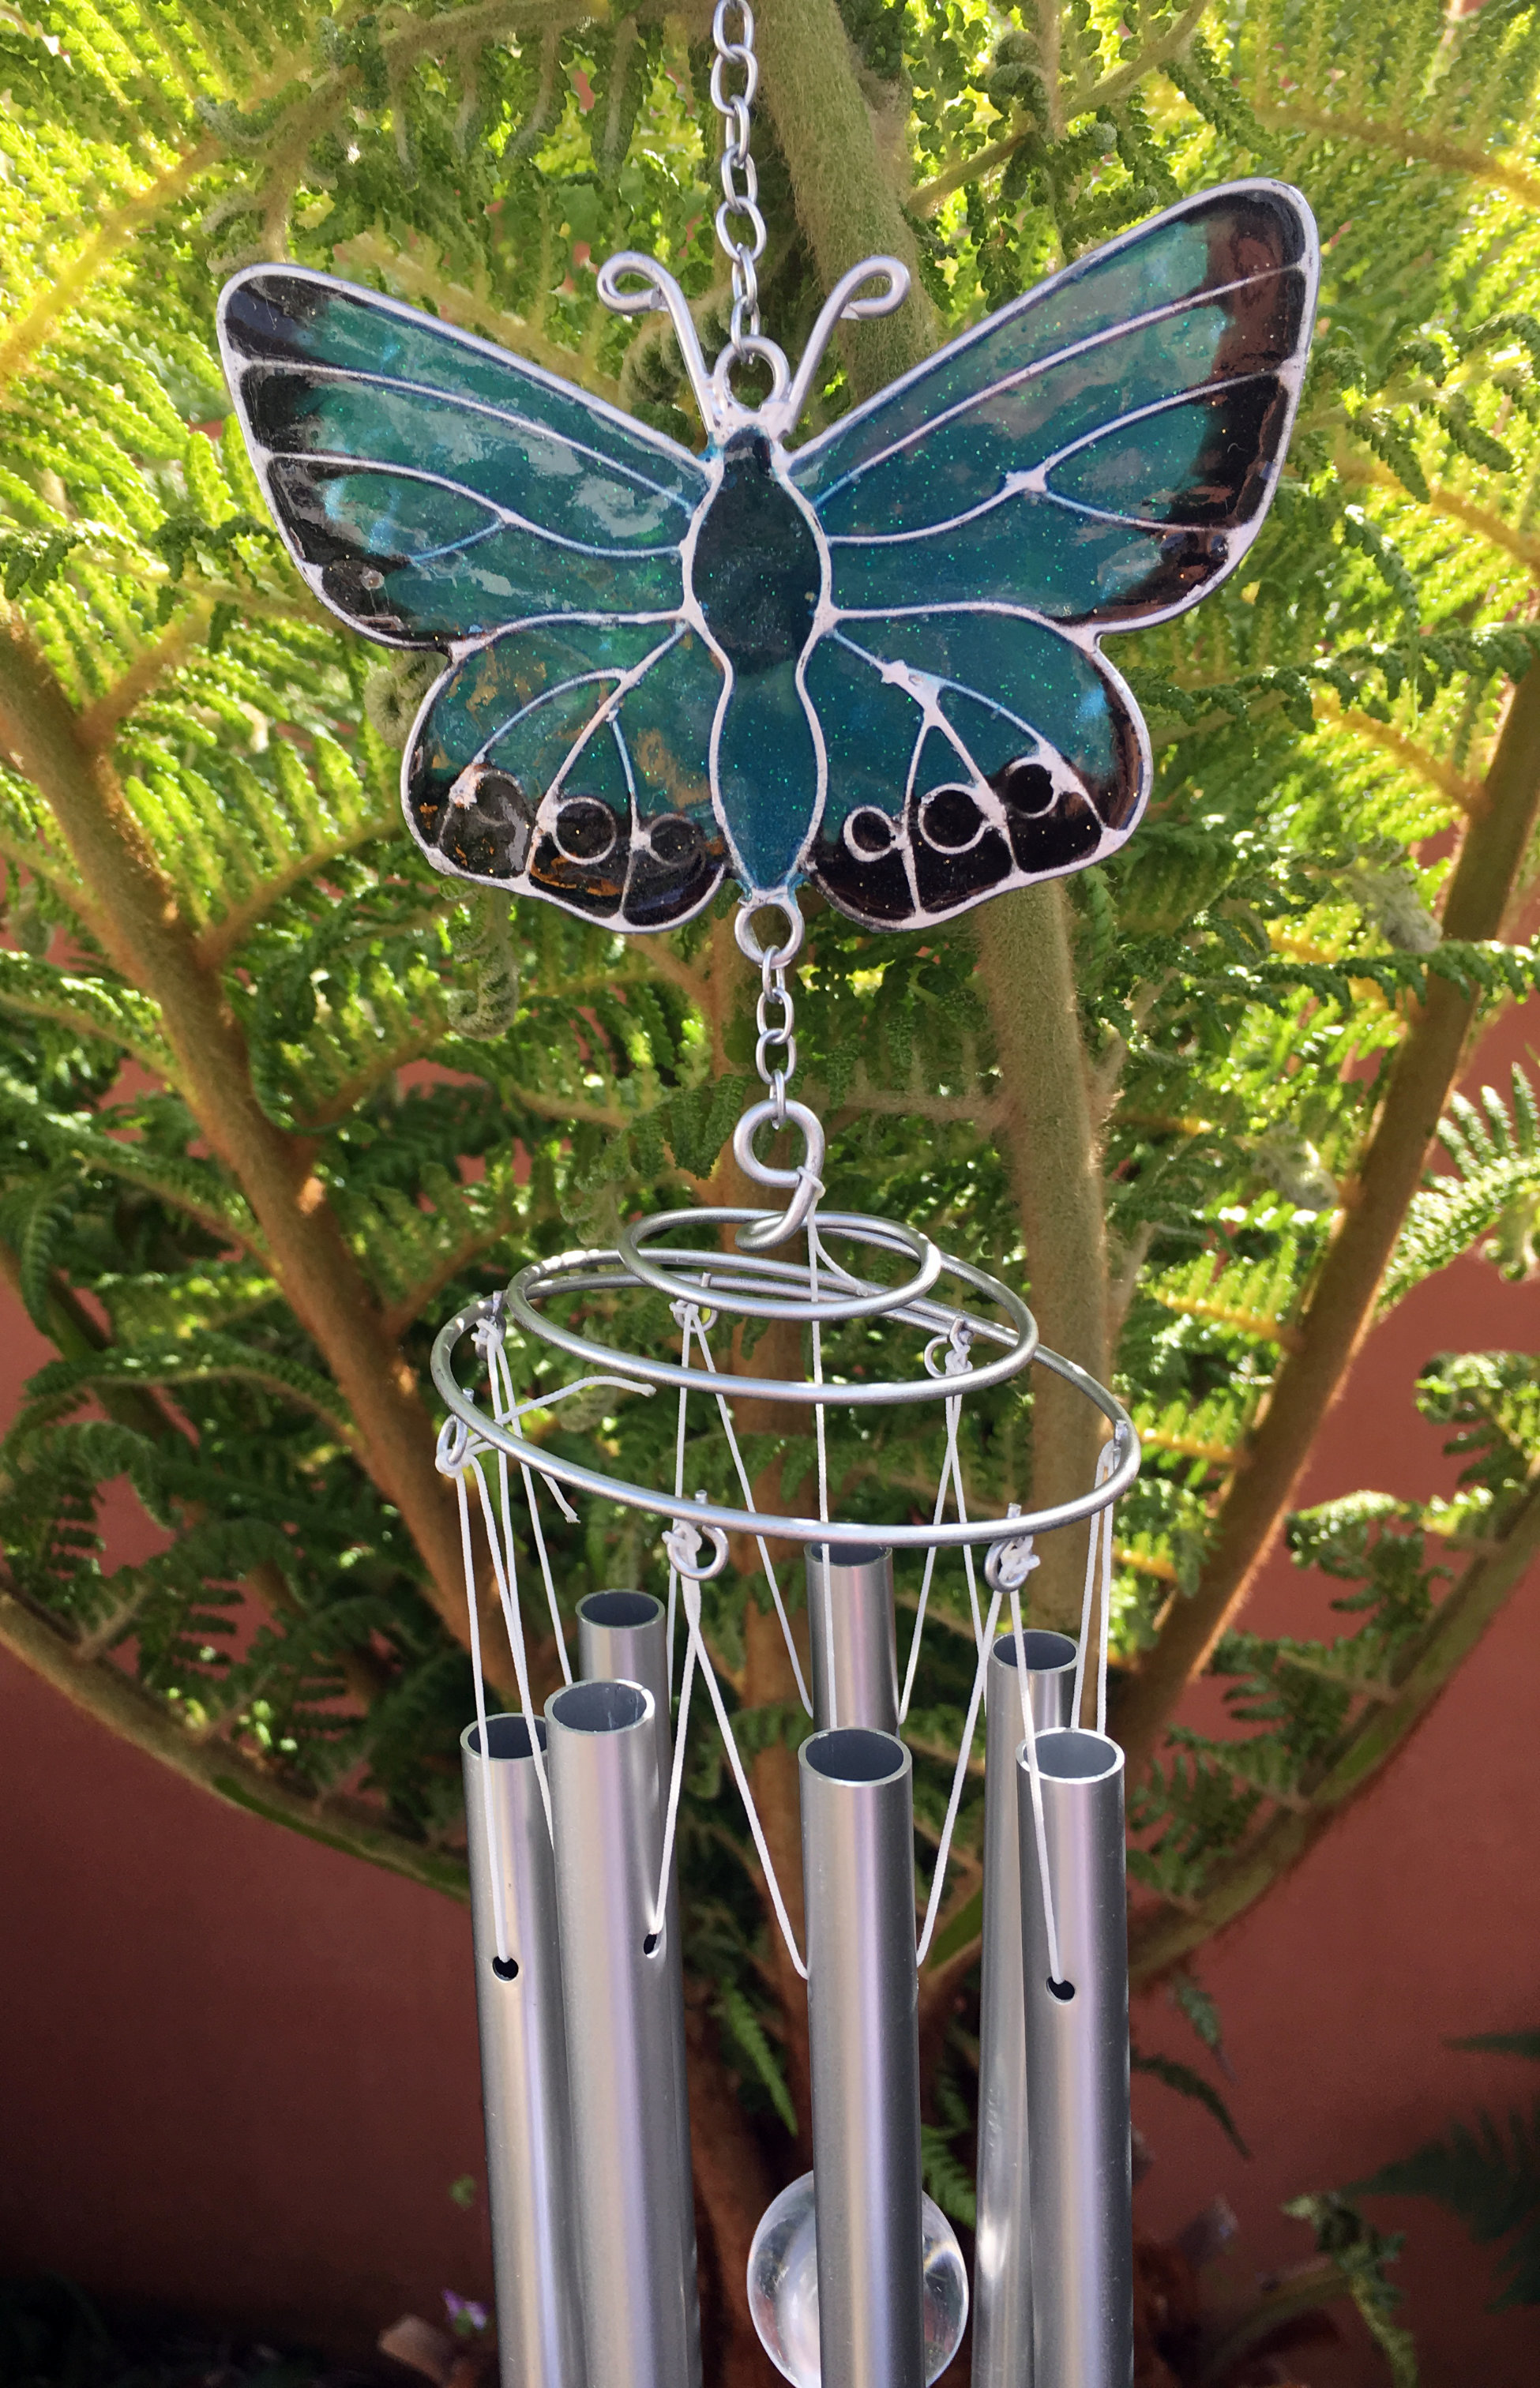 Large-Metal-amp-Glass-Hanging-Sun-Catcher-Wind-Chime-Home-Garden-Decorations thumbnail 16